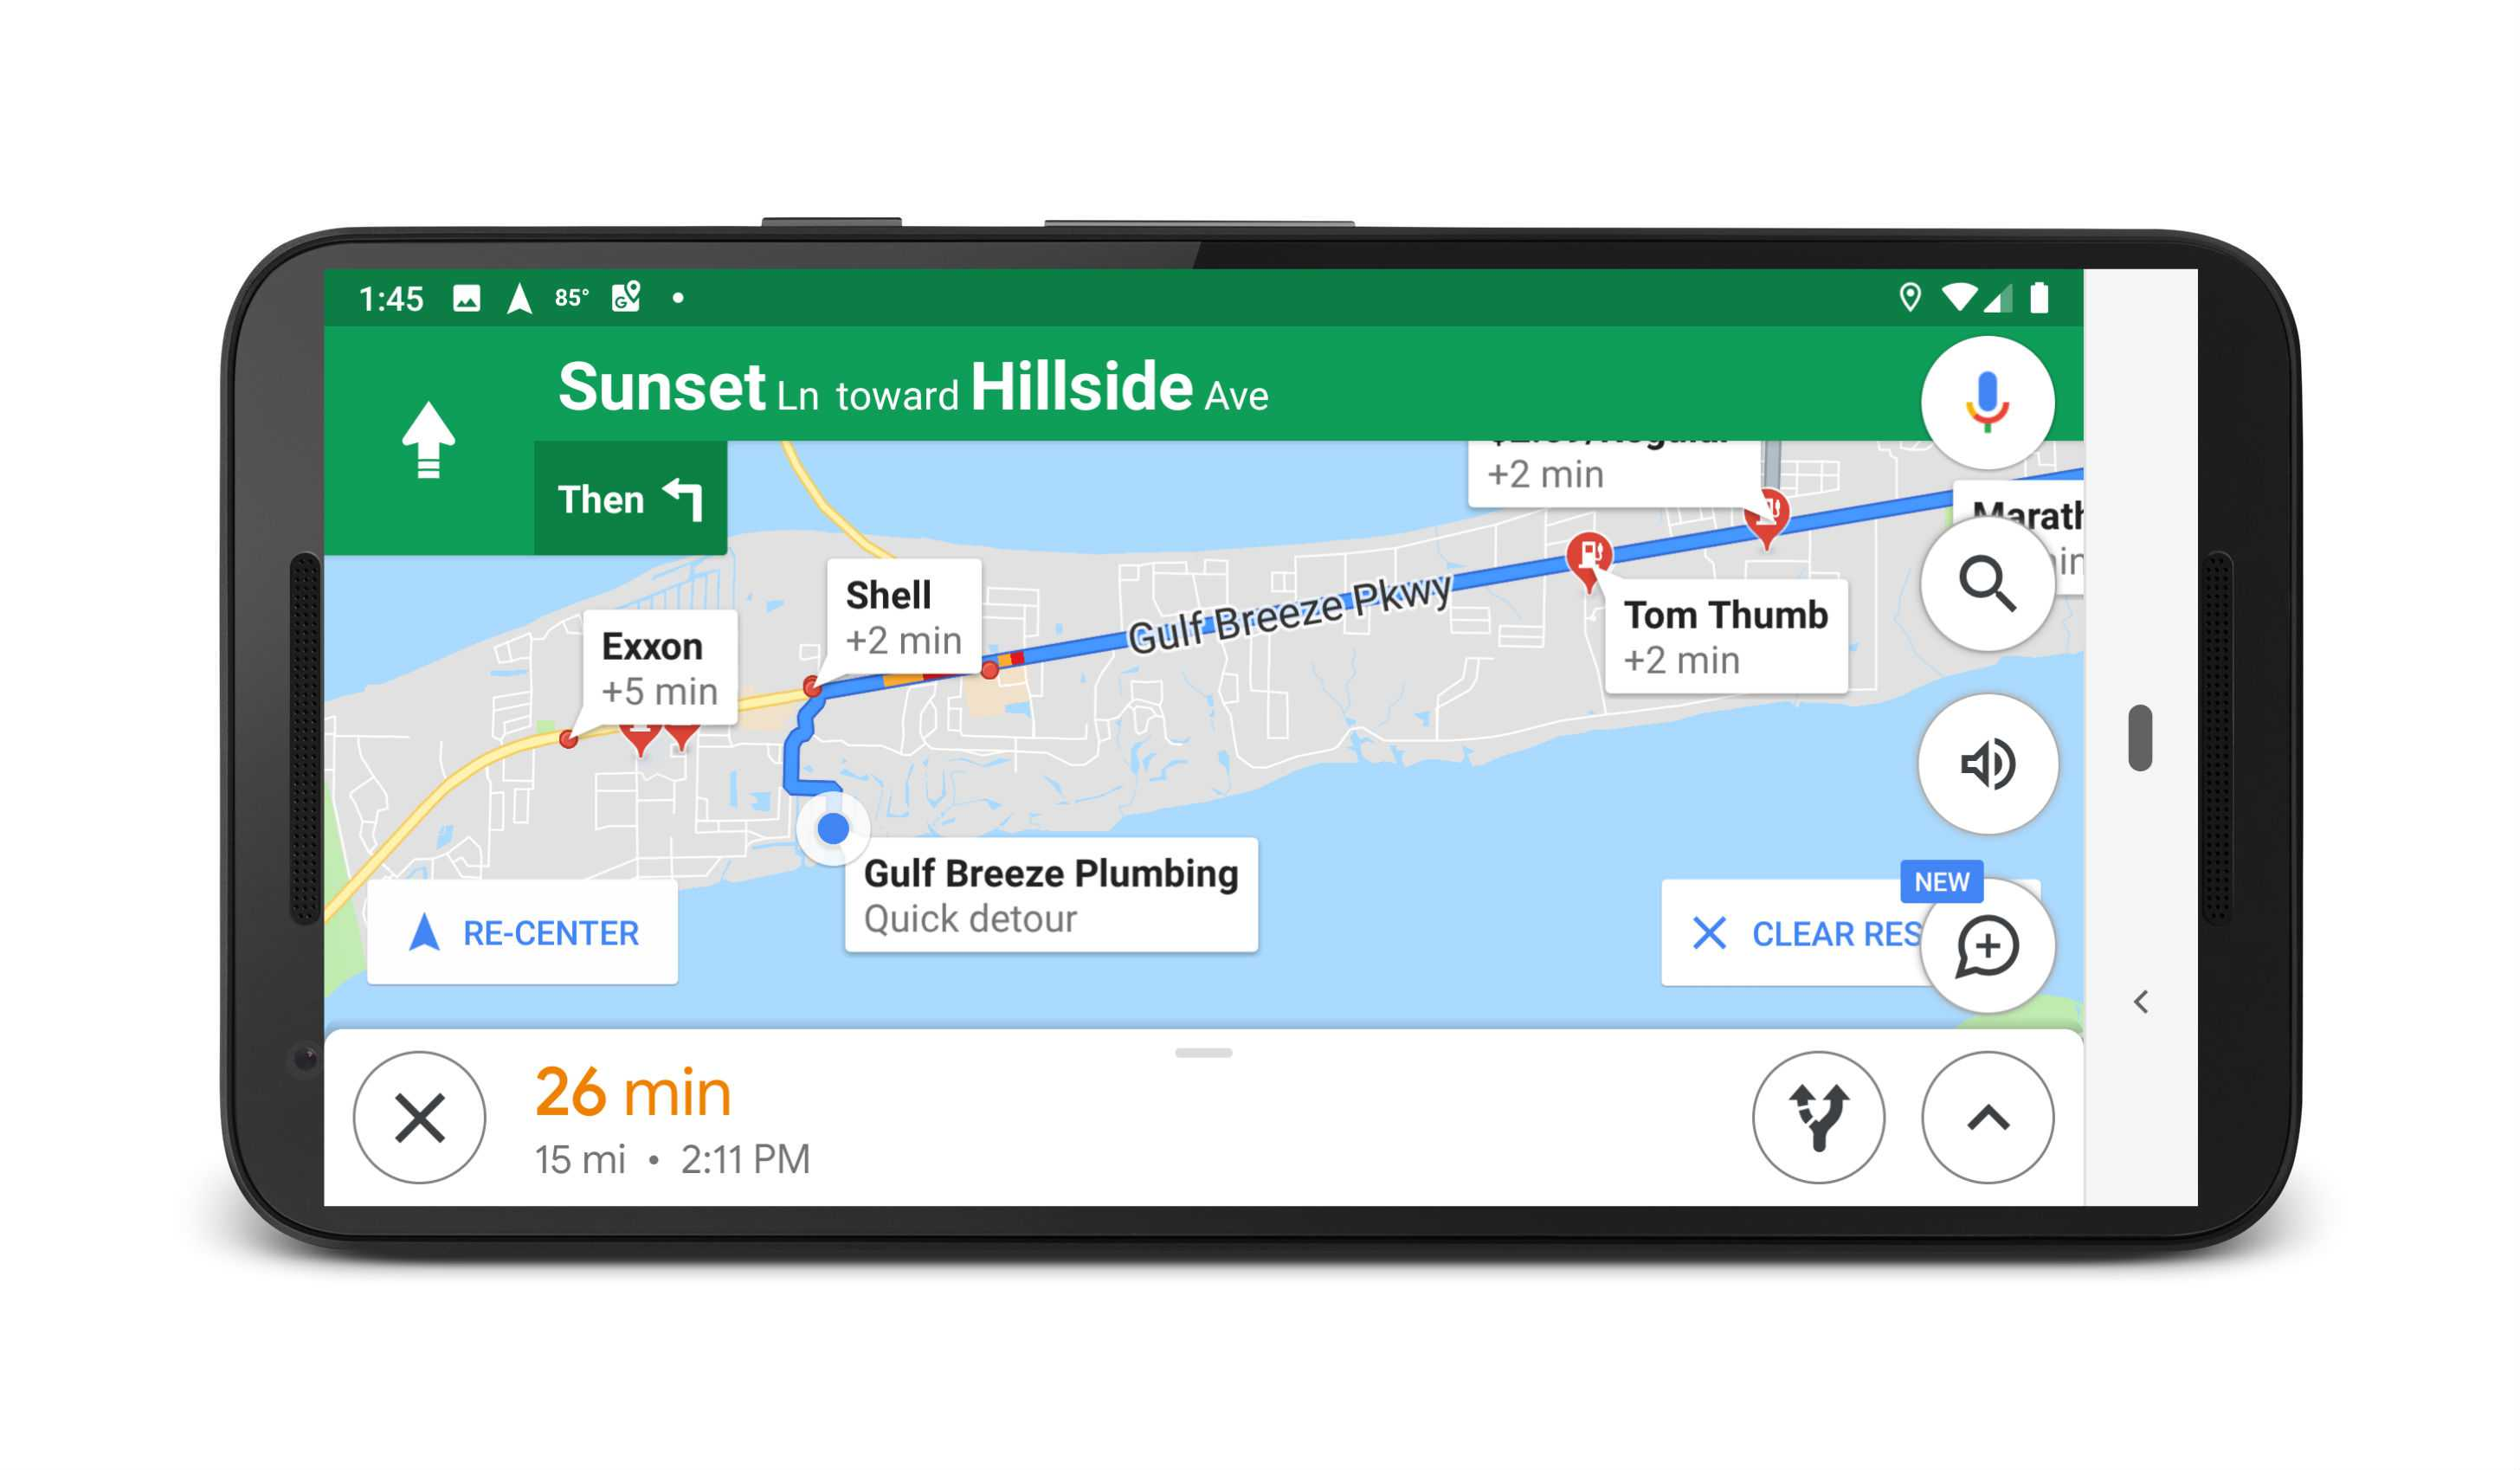 How to Use Google Assistant With Google Maps